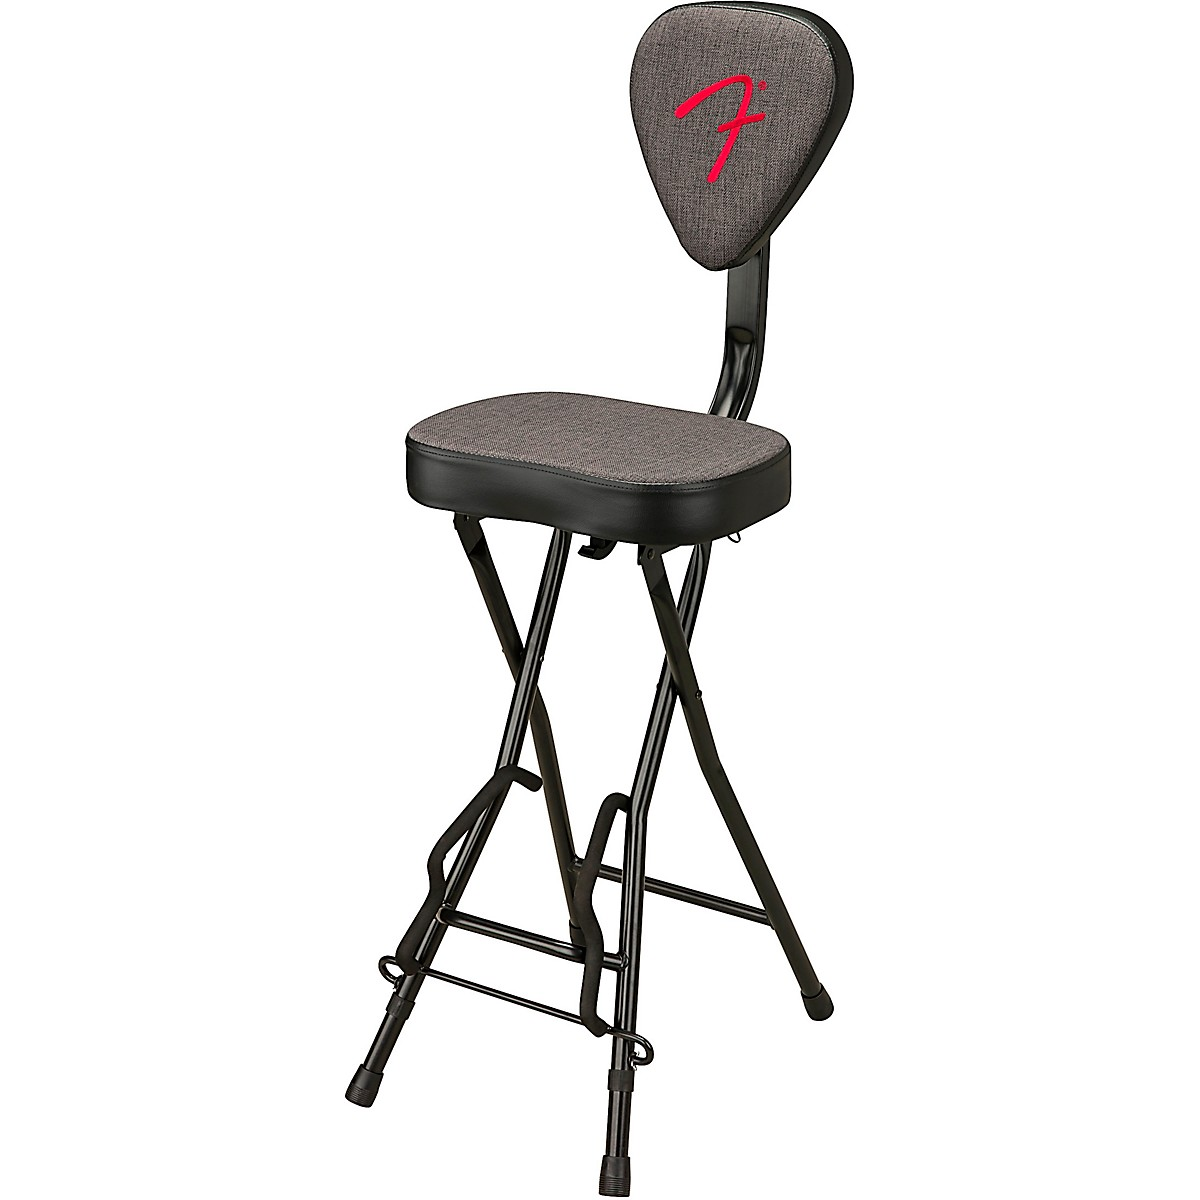 Fender 351 Studio Seat and Stand Combo